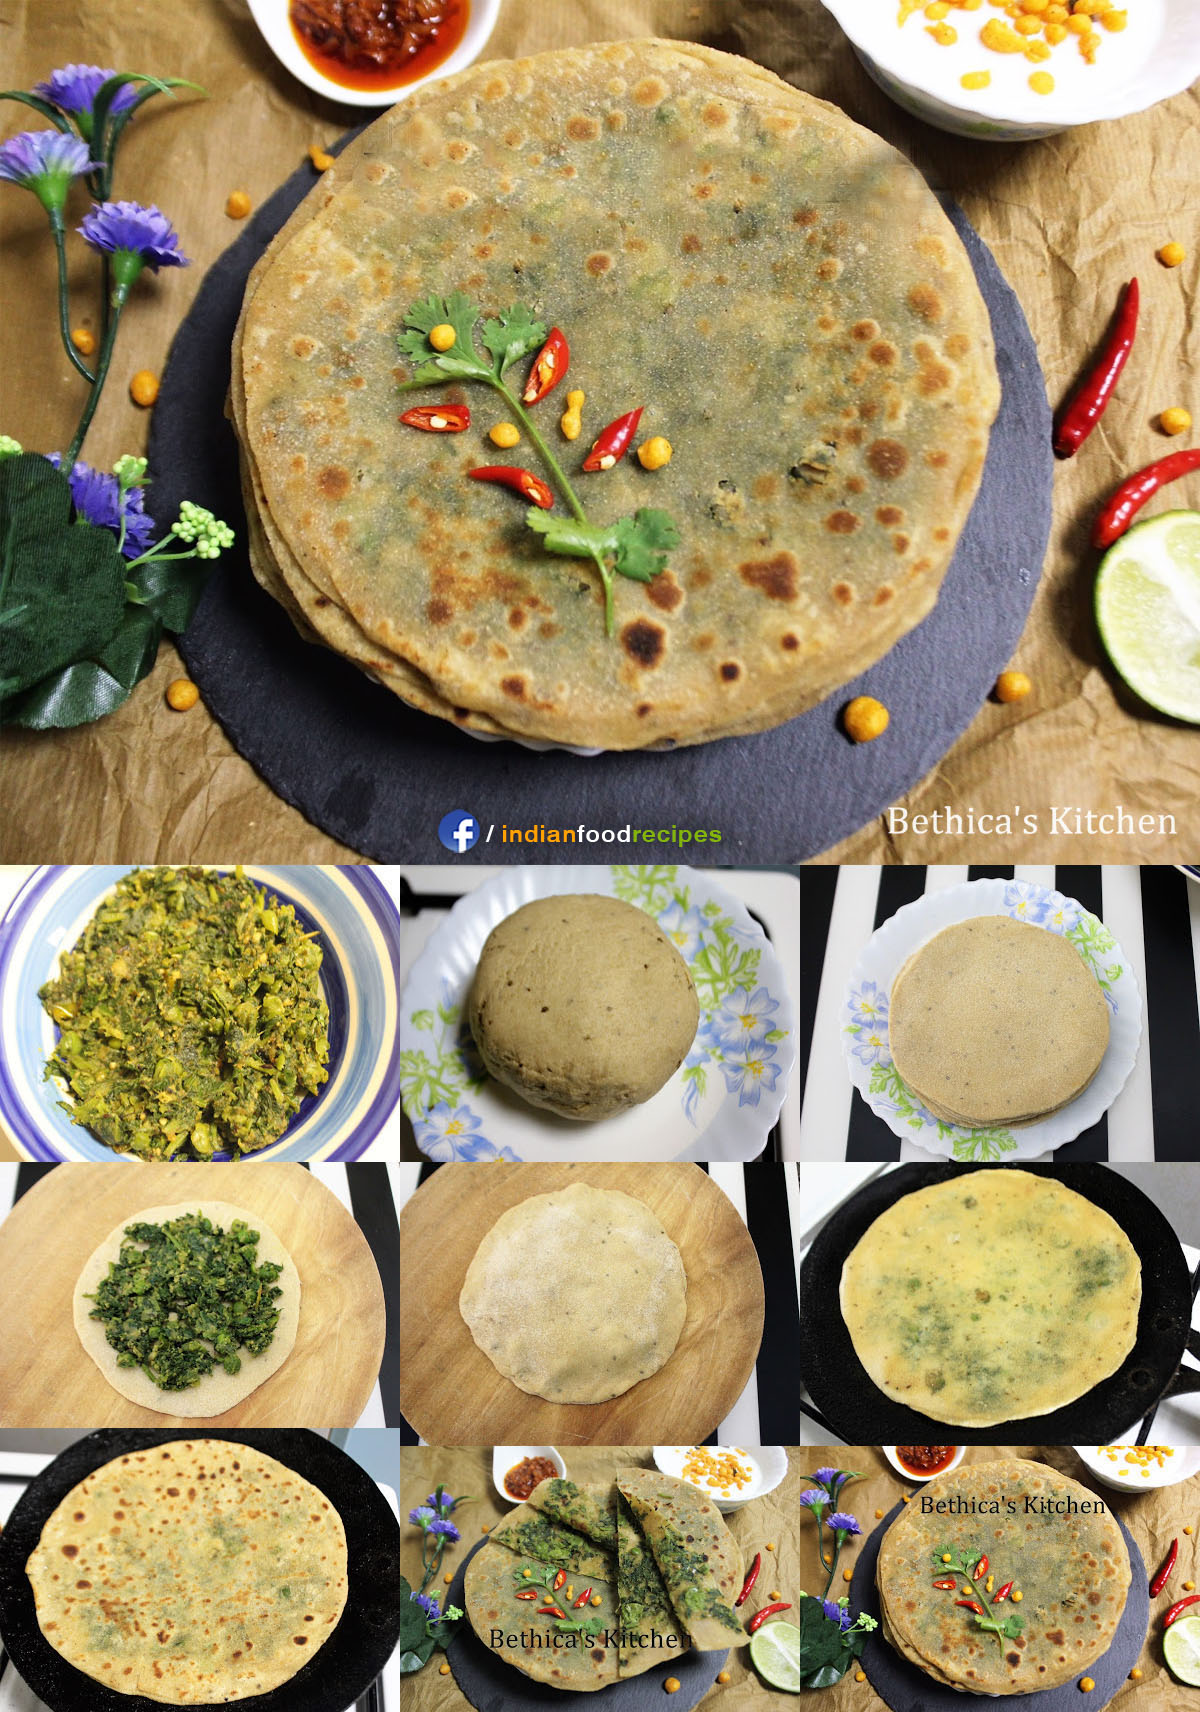 Hara Bhara Bharwan Paratha (Greens Stuffed Flat Bread) recipe step by step pictures